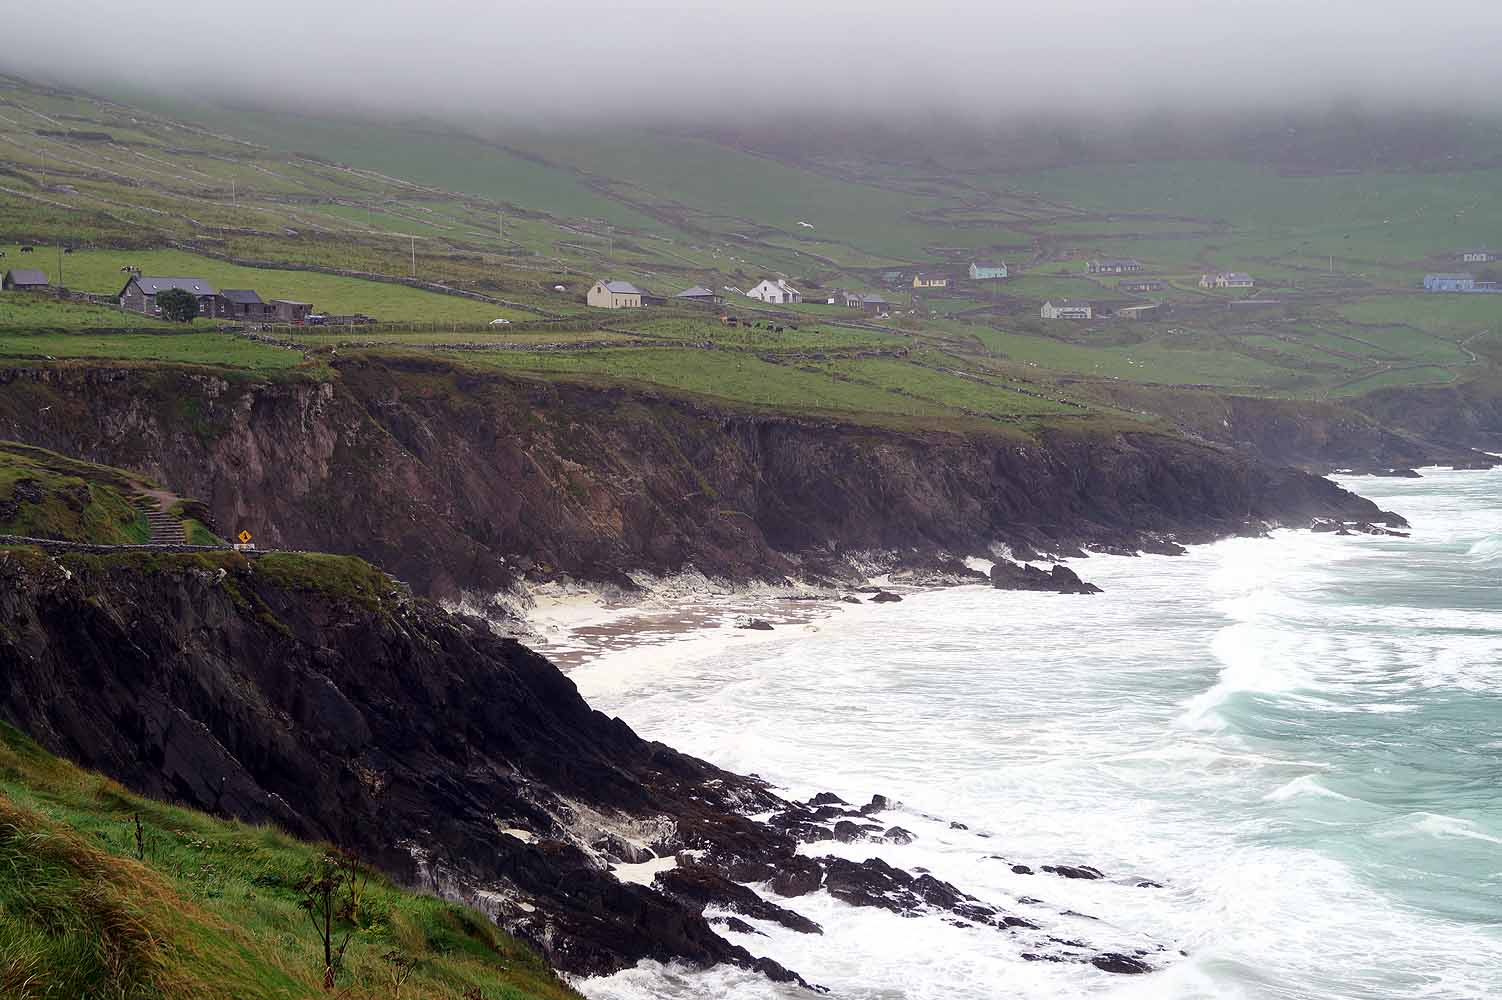 Roundtrip um Dingle, Irland